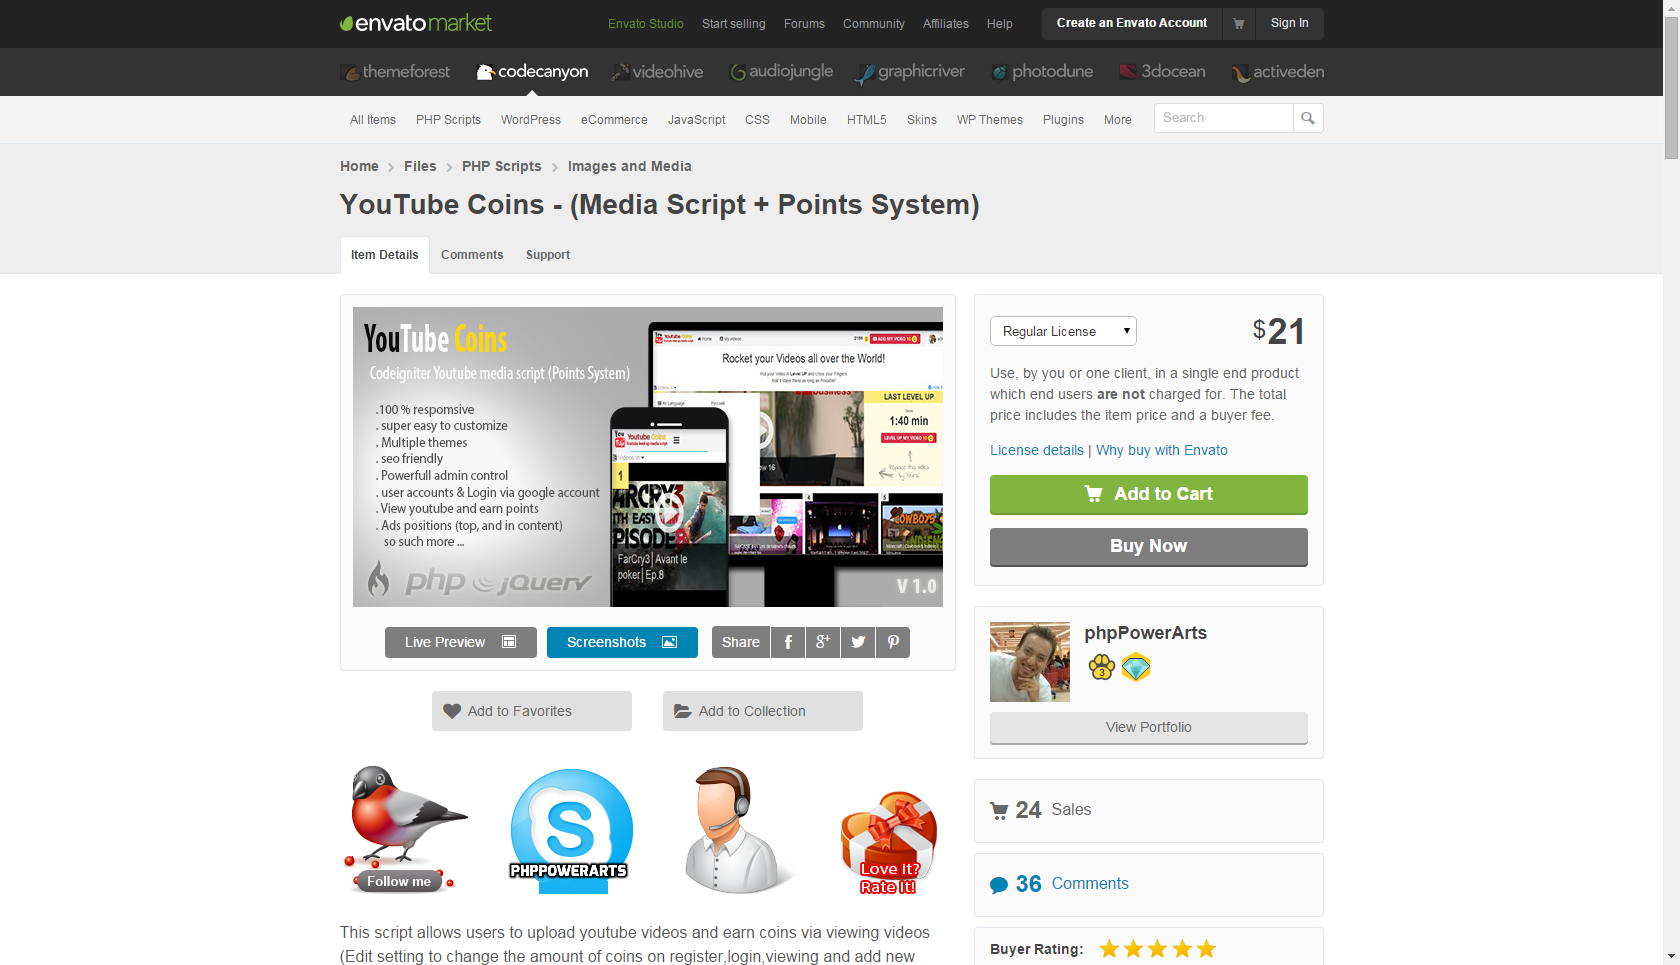 YouTube Coins - (Media Script + Points System) | Create